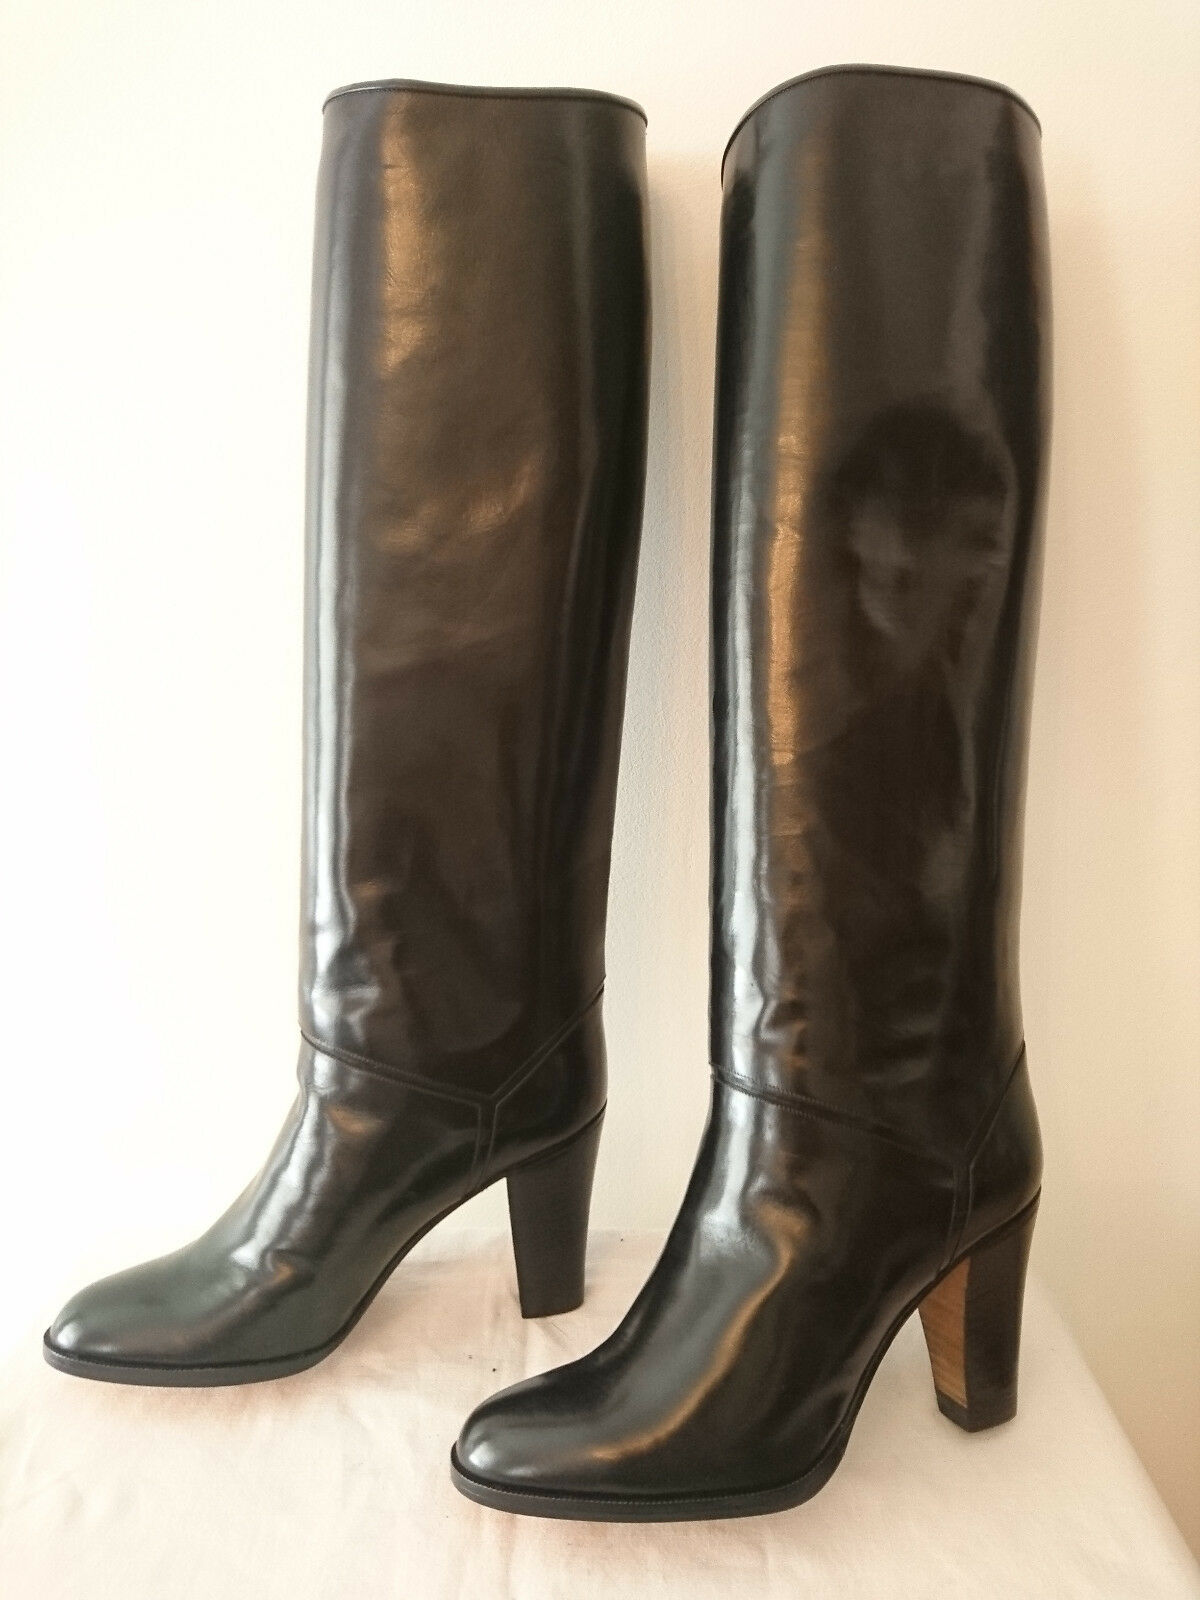 Boots Vintage d' Exception  Black  I.BOSSI  (A) T.37